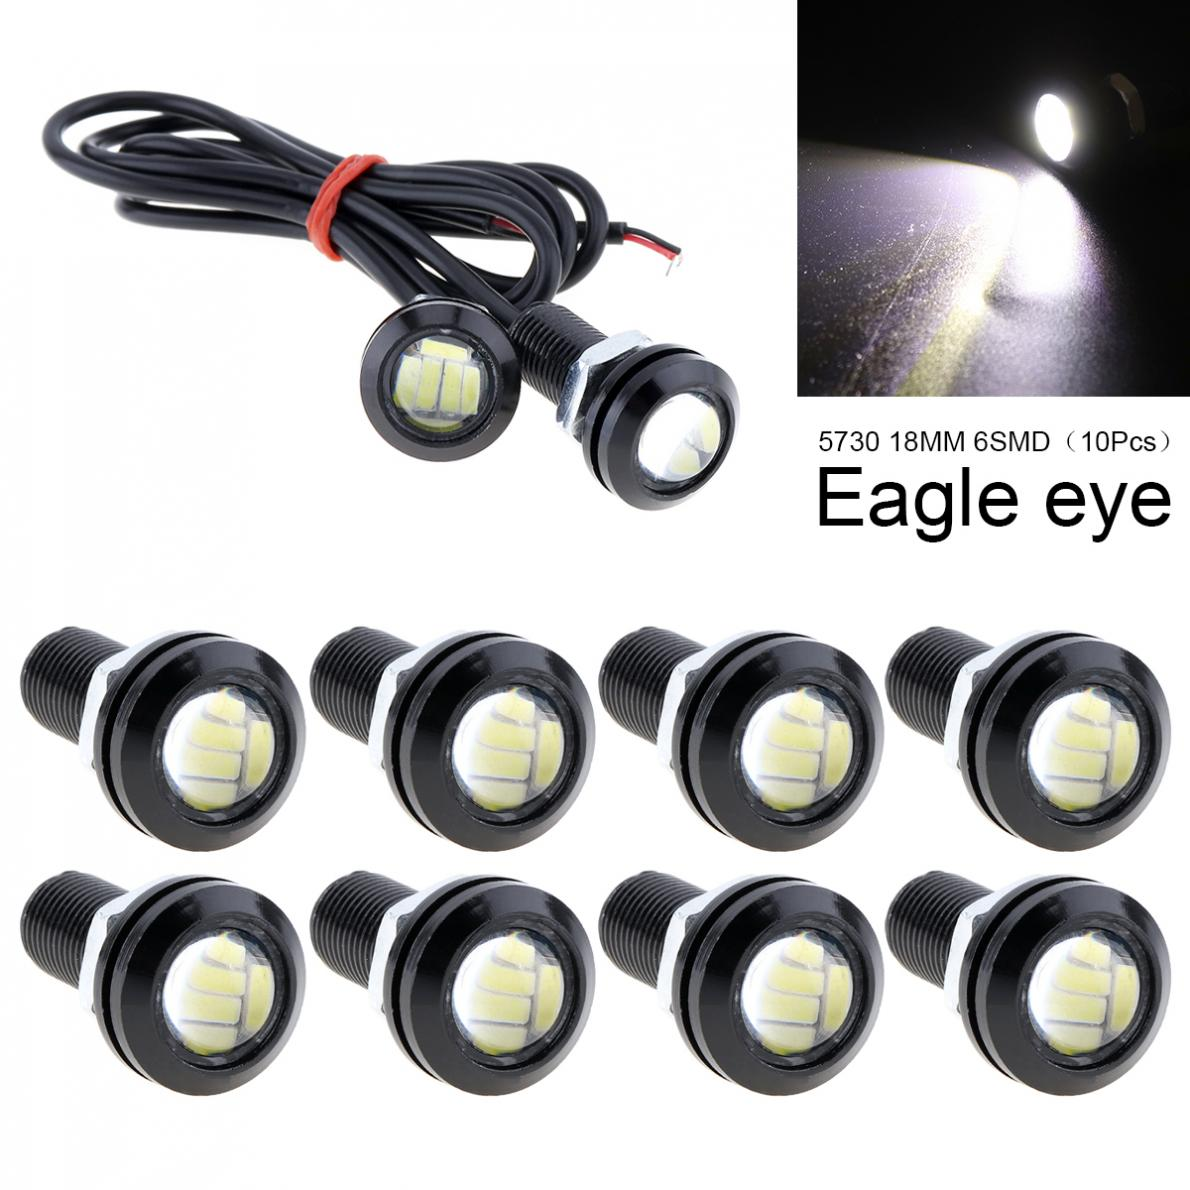 Automobiles & Motorcycles Atv,rv,boat & Other Vehicle 10pcs Waterproof 18mm 9w Cob White Led Eagle Eye Car Fog Drl Turn Signal Light Be Friendly In Use